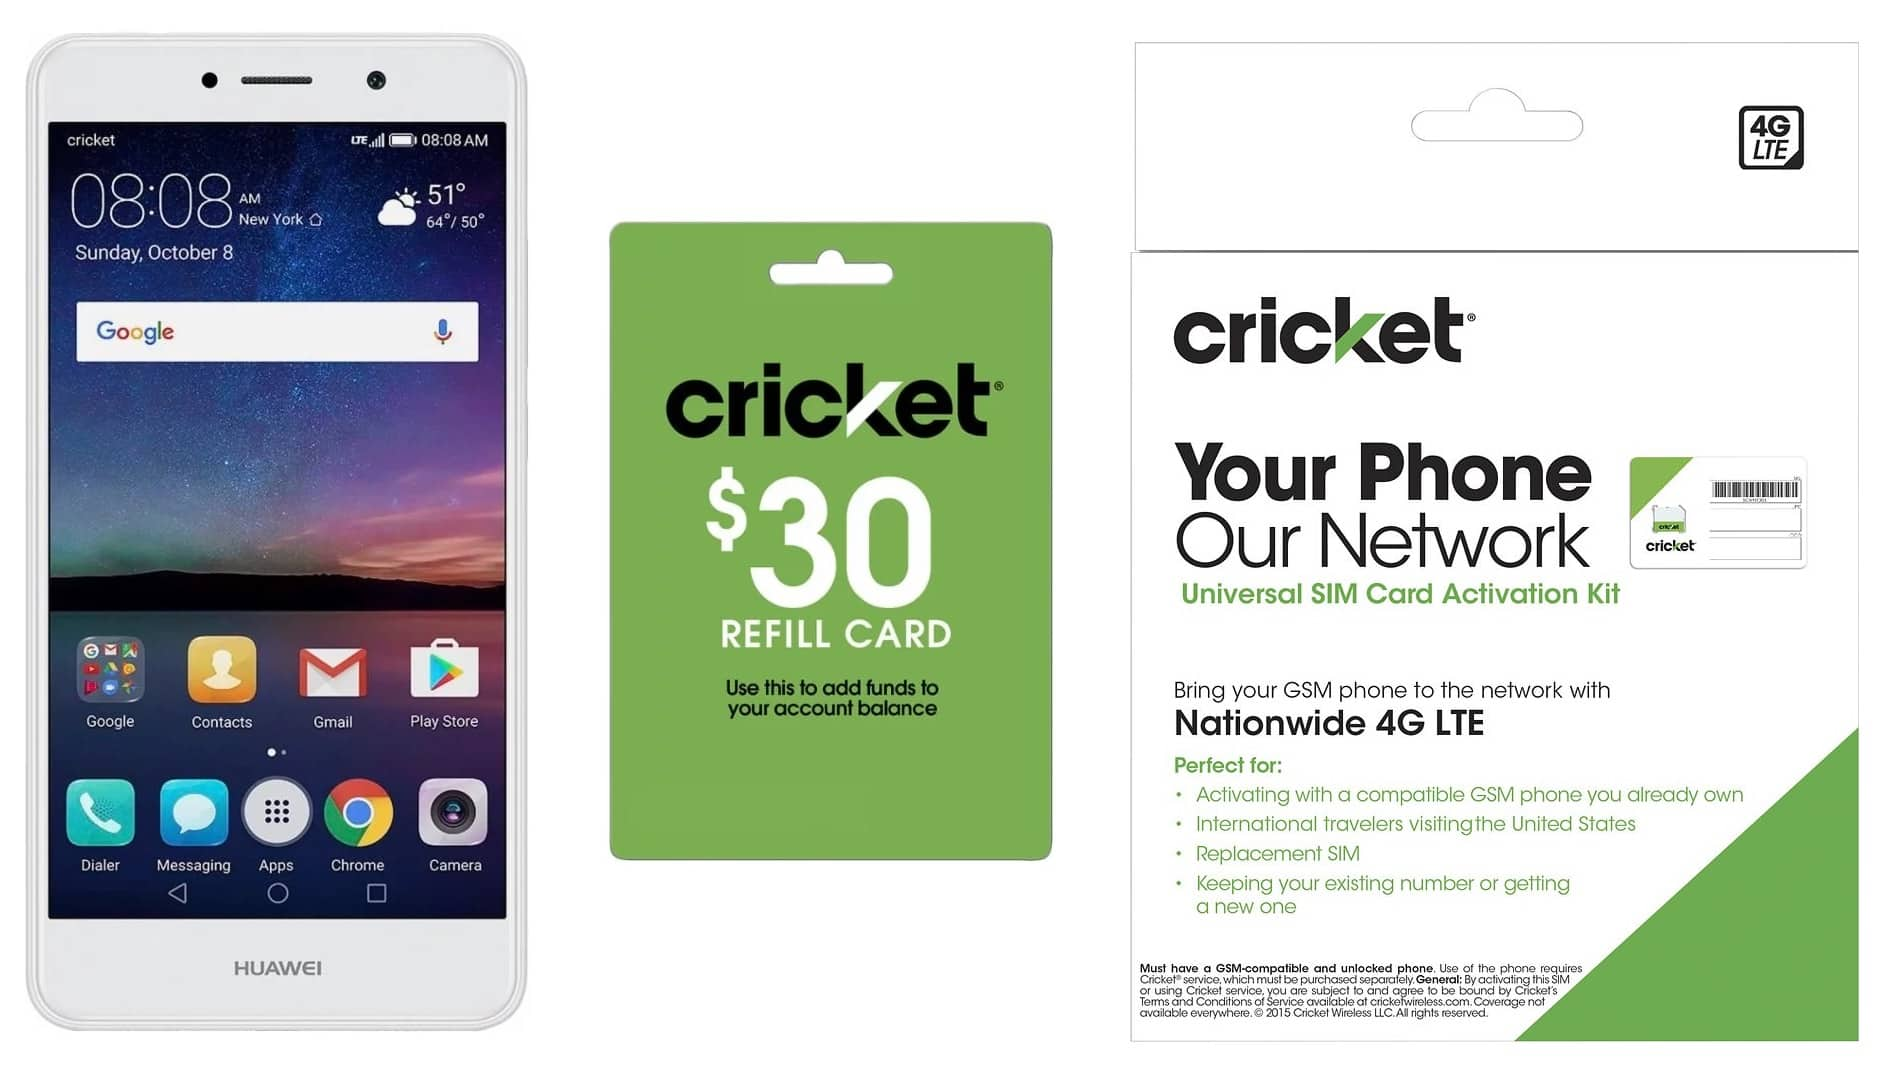 16gb Huawei Elate Cricket Wireless Prepaid Phone 30